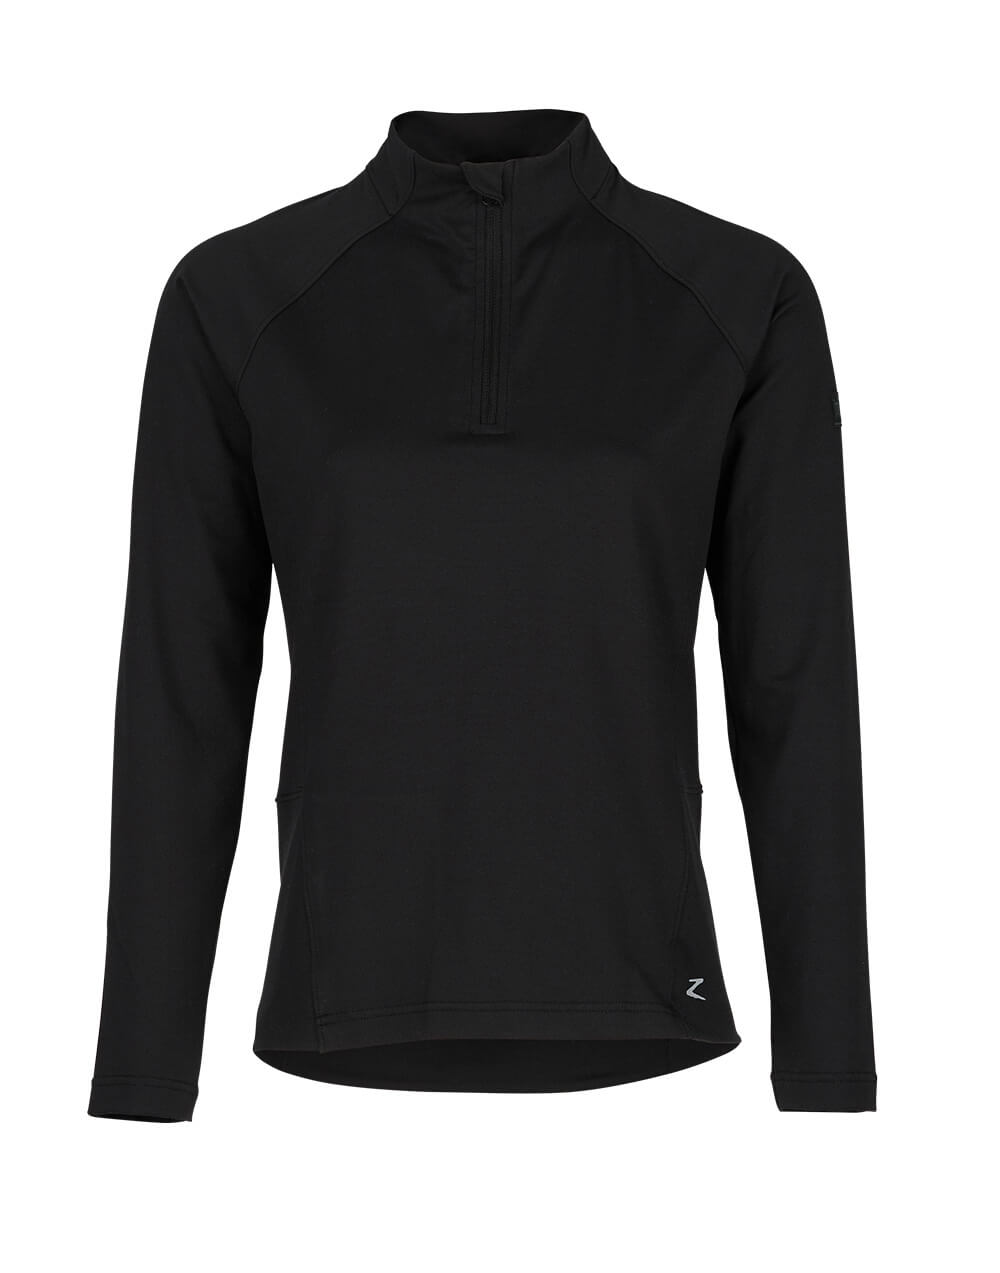 Light long sleeved training shirt with zipper at front and high collar